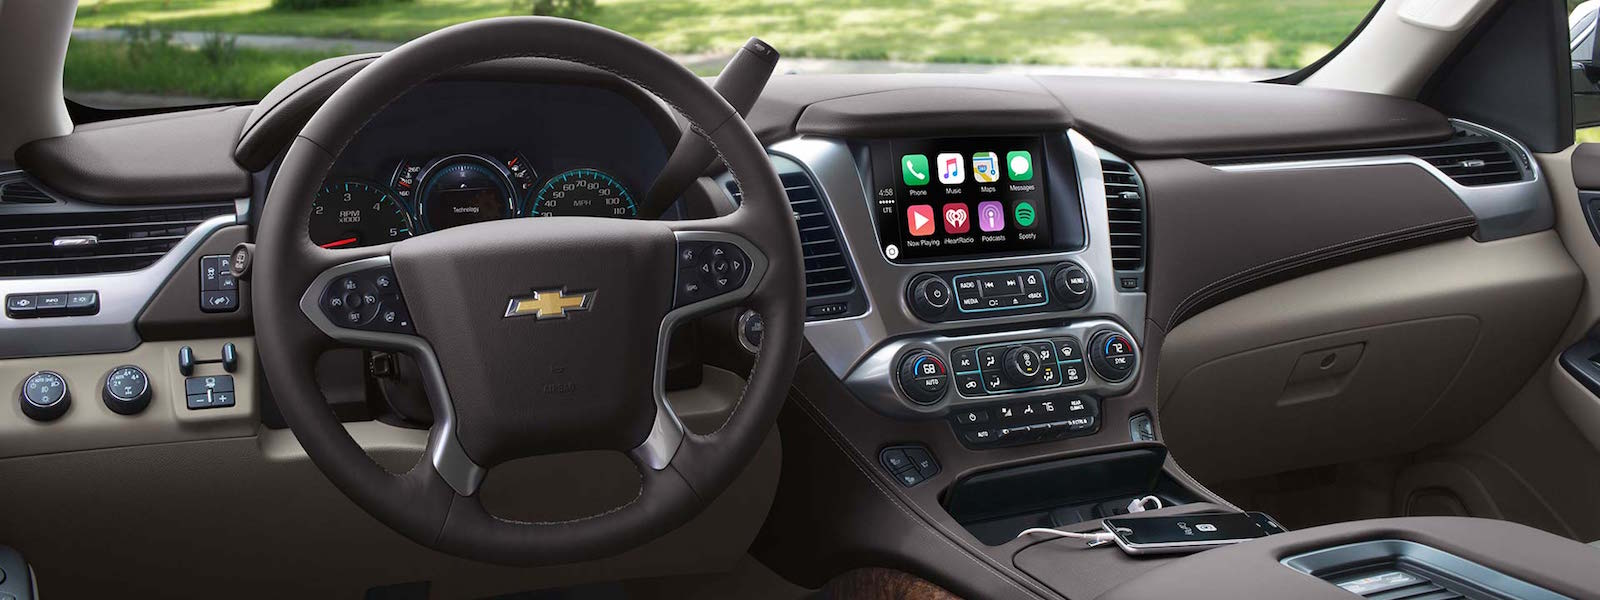 2016 Chevy Tahoe Technology